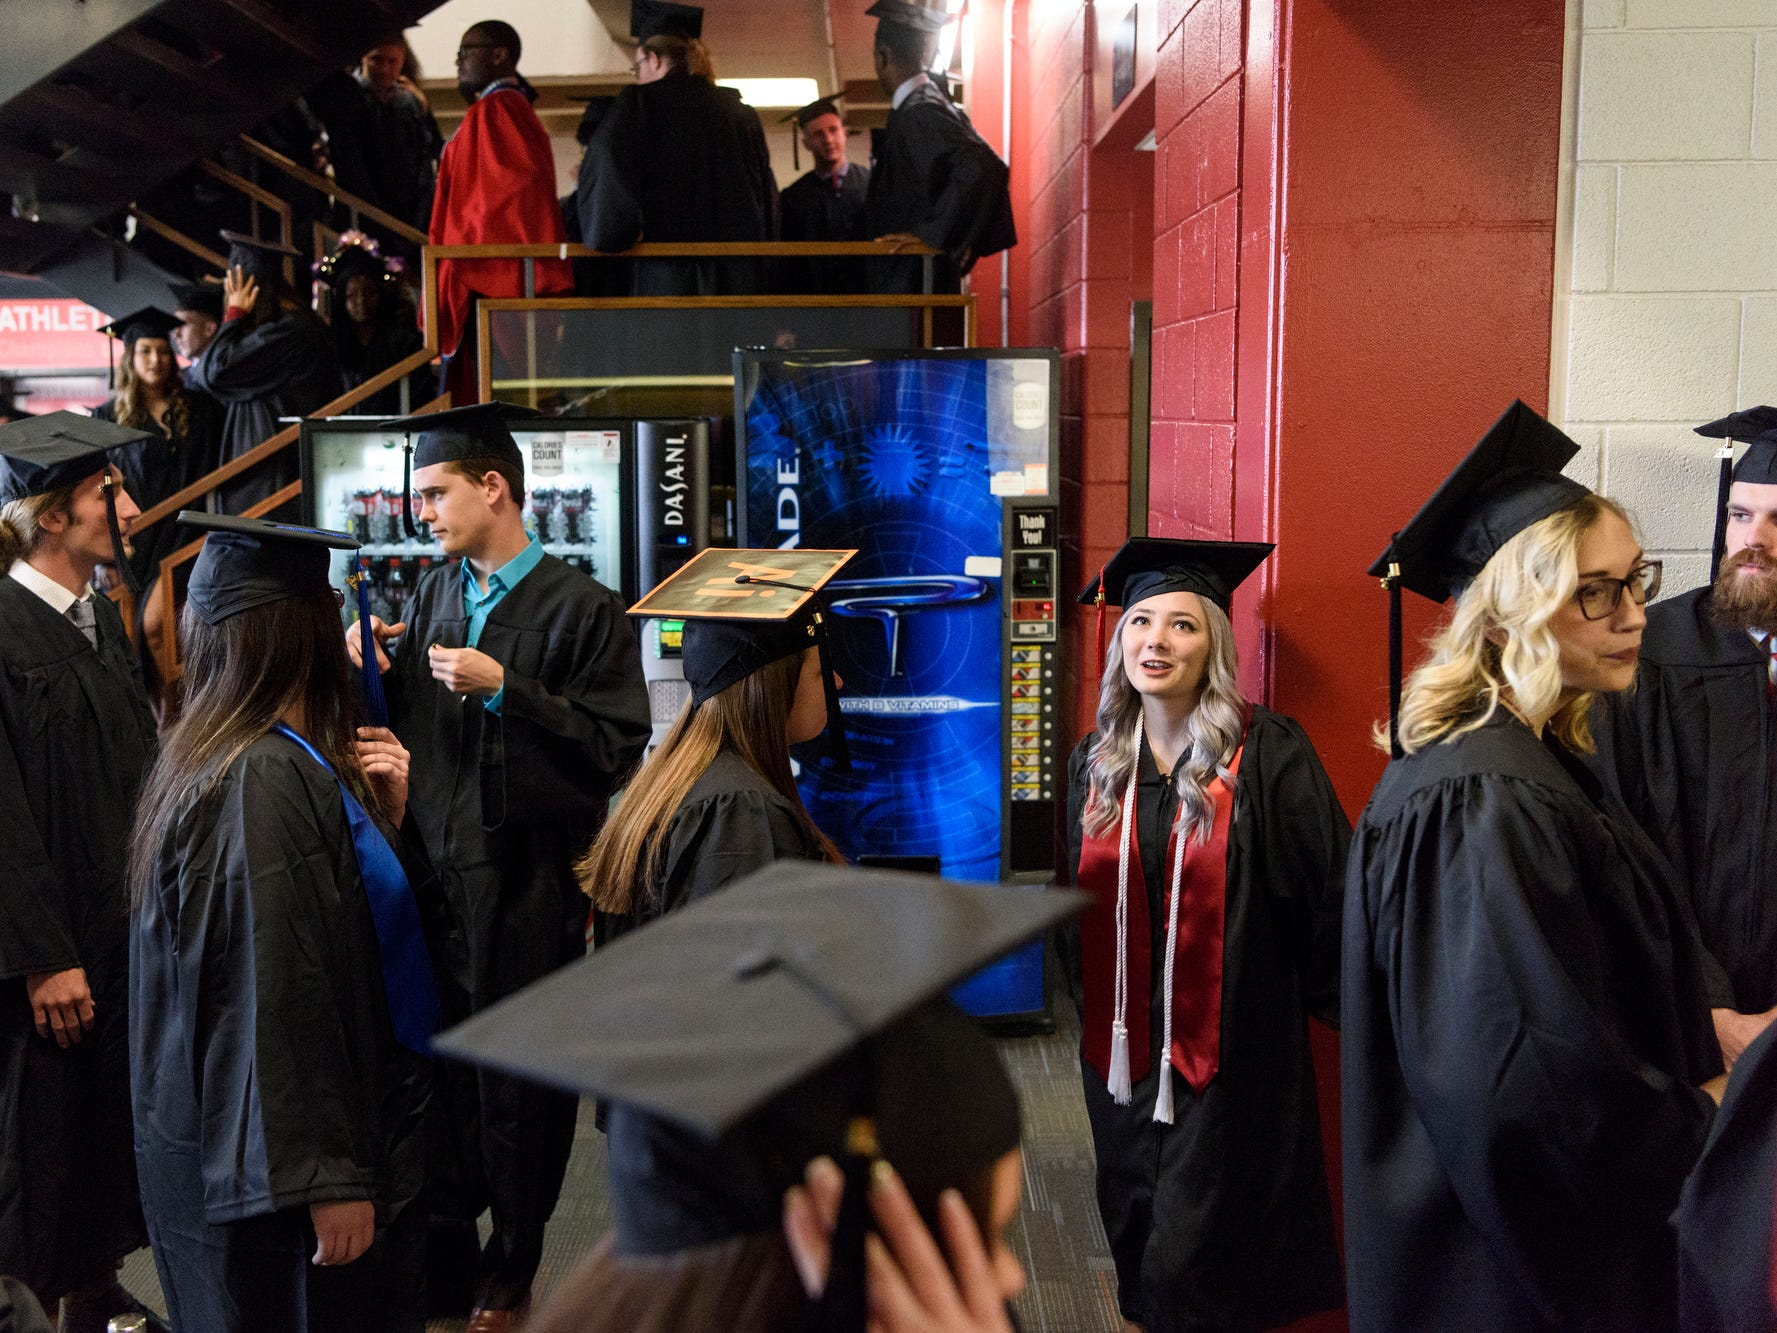 University of Southern Indiana graduates mingle as they wait for their signal to walk into the fall commencement ceremony for the College of Liberal Arts and the Romain College of Business held inside the Physical Activities Center on campus, Saturday afternoon, Dec. 8, 2018.